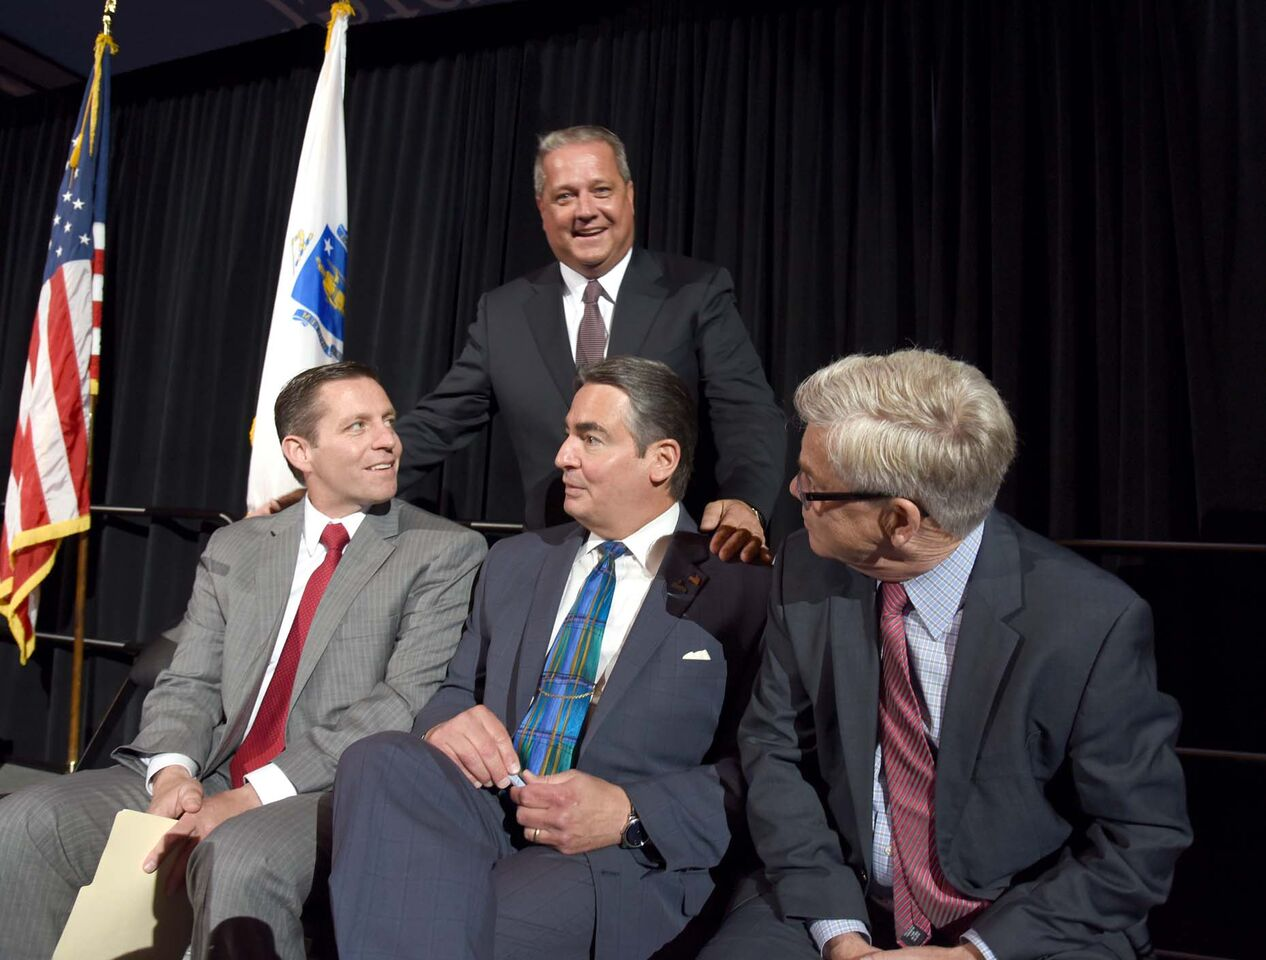 Dennis Murphy with (from left to right) Fred Peterson, Deputy Director of the Massachusetts Convention Center Authority, Springfield Mayor Domenic Sarno and David Andrews, President and CEO of the American Hockey League, at the unveiling of the Springfield Thunderbirds, the AHL affiliate of the Florida Panthers, at the MassMutual Center on June 15, 2016.